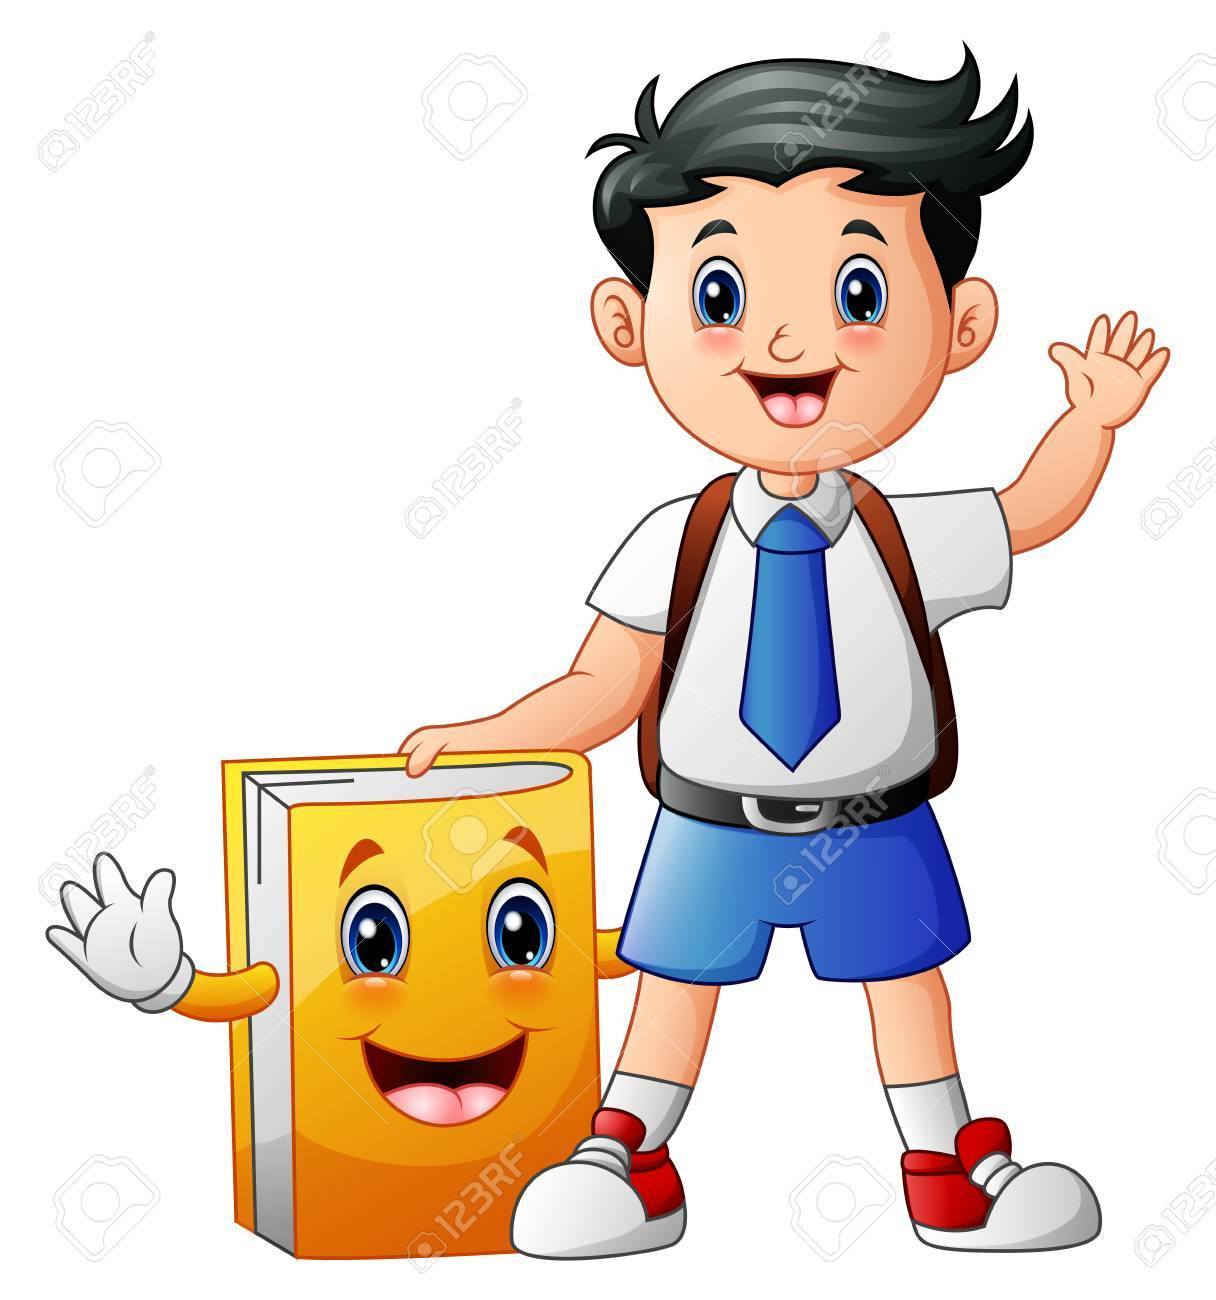 A Cute Boy In A School Uniform With Book Cartoon Character Stock